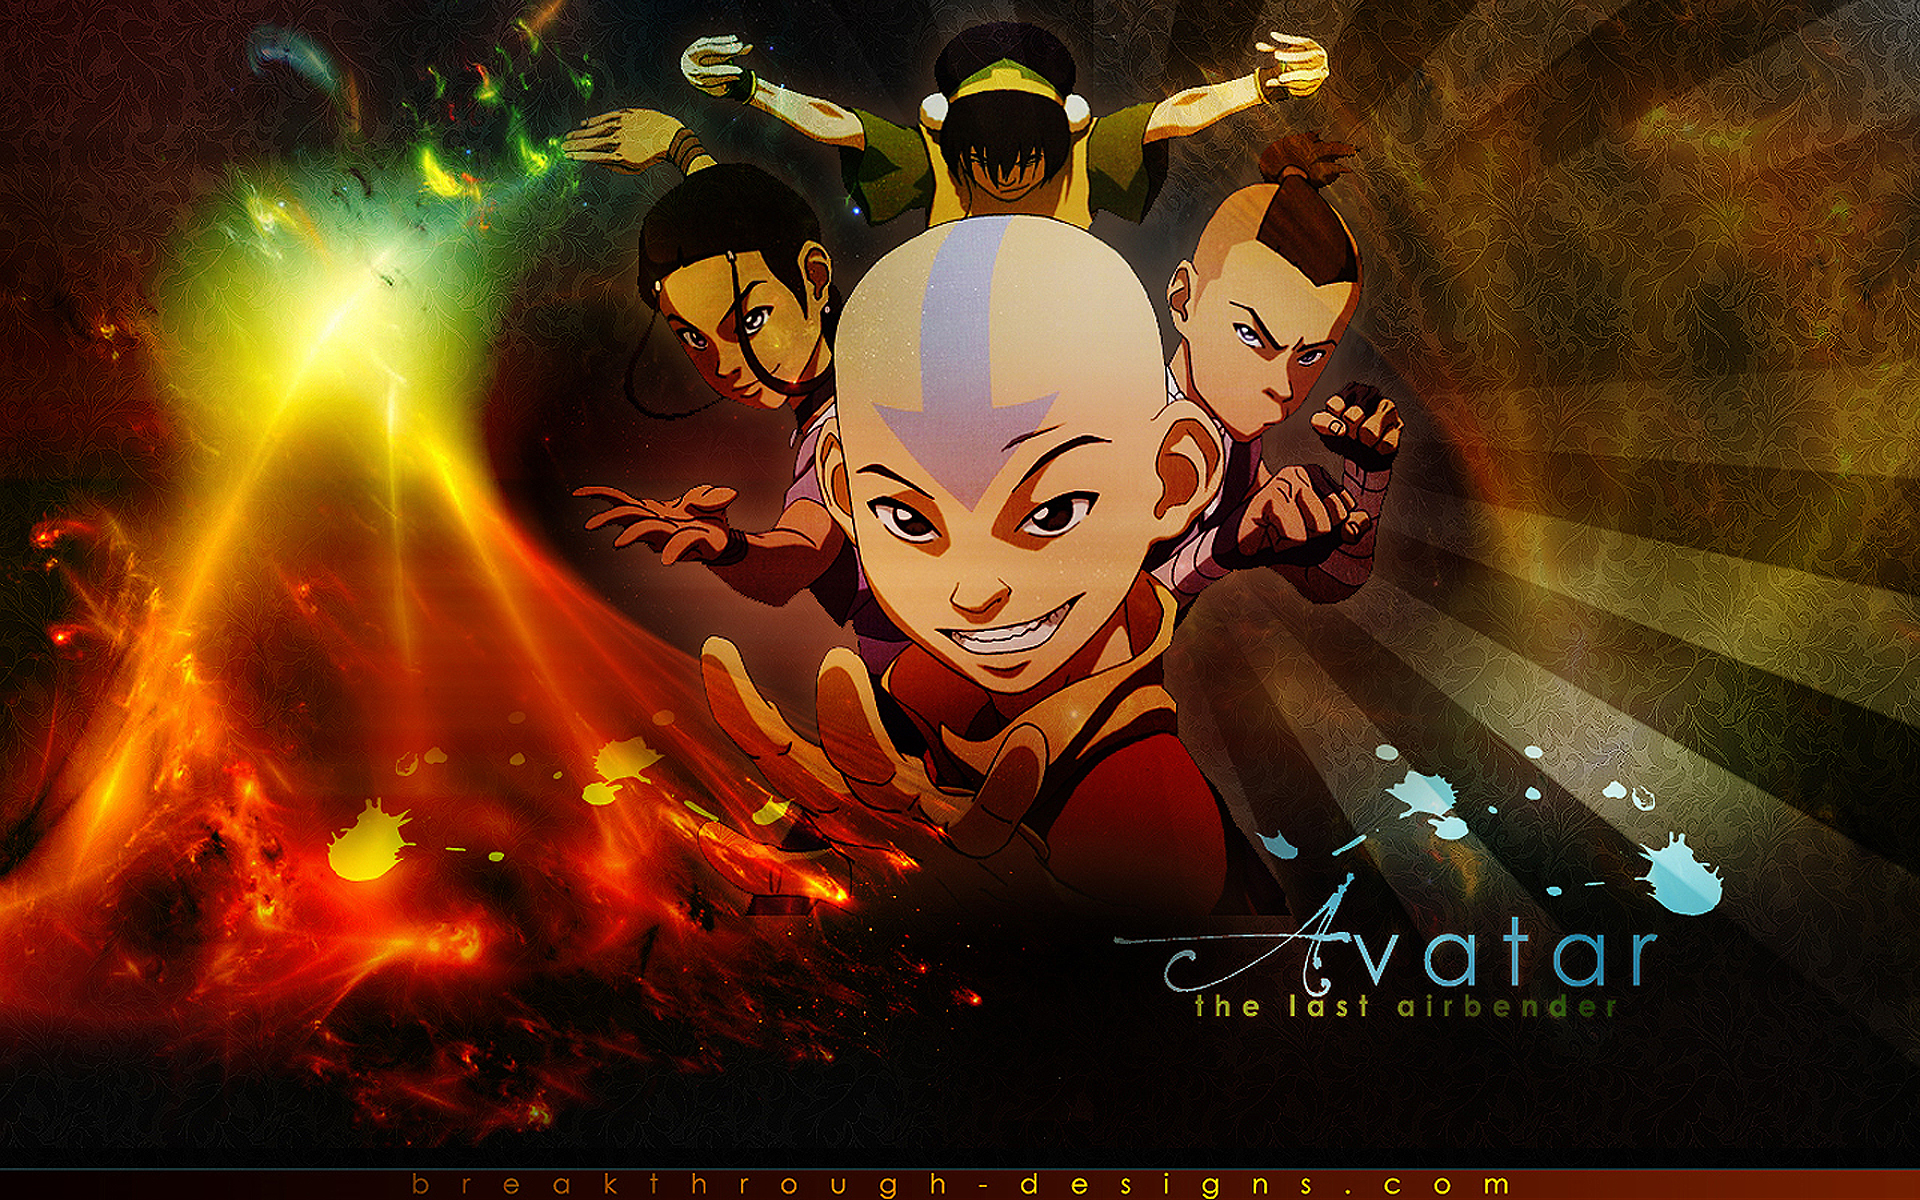 Avatar The Last Airbender Hd Wallpapers For Desktop Download